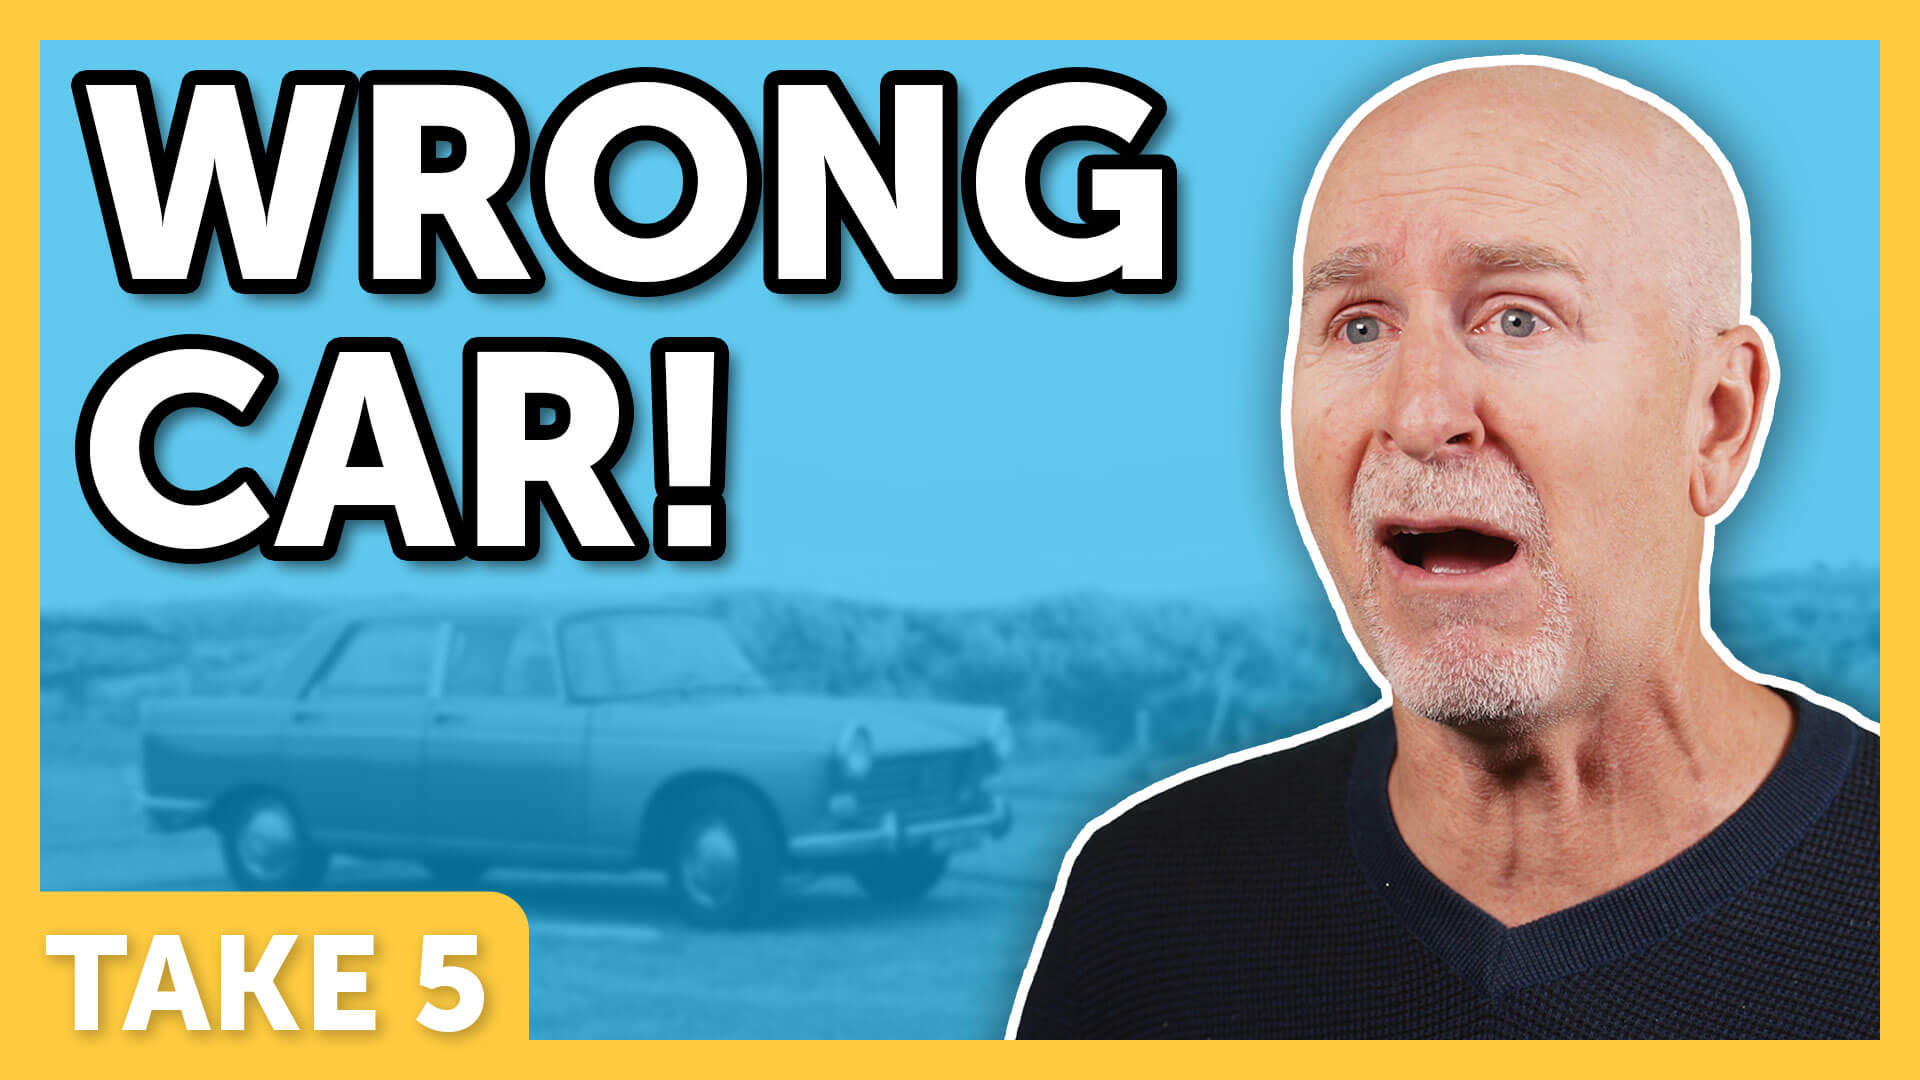 Wrong Car! - Laugh-A-Minute with Phil Callaway | Laugh Again TV